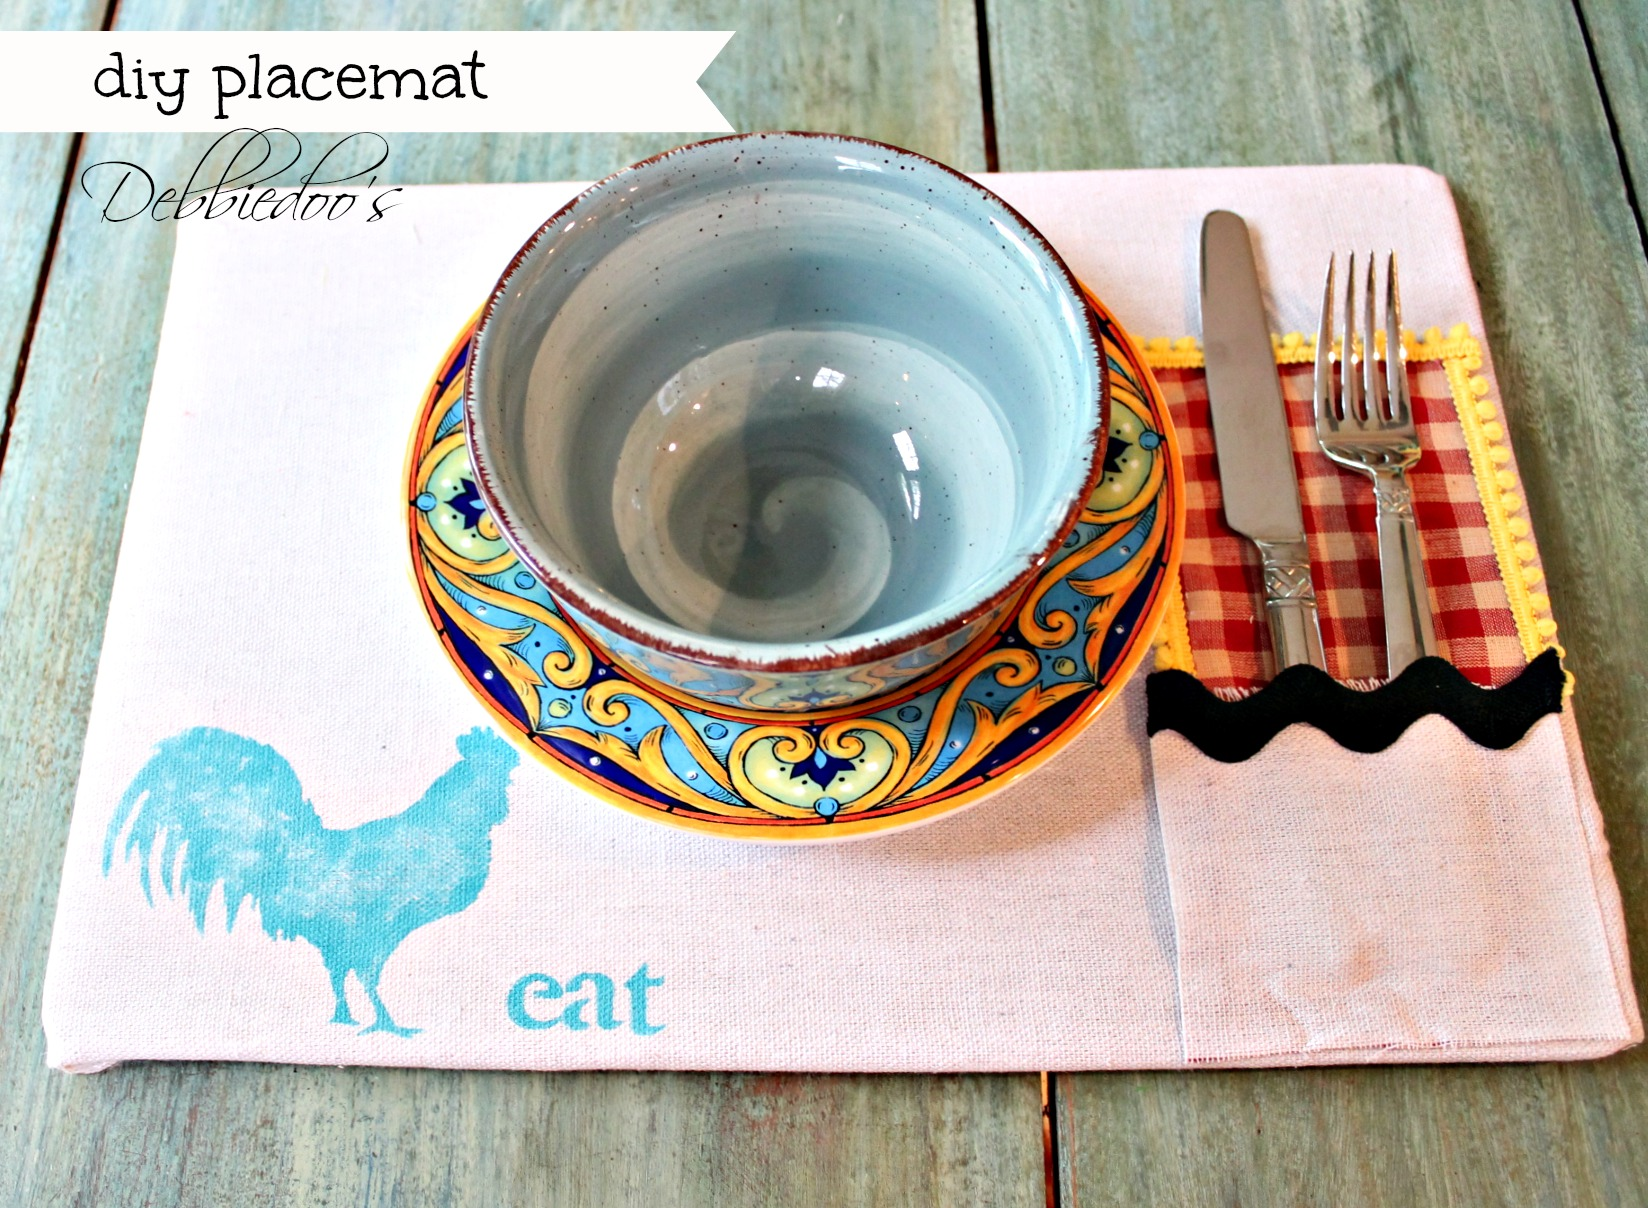 diy-placemat-and-placeset-holder-021 Diy projects out of drop cloths